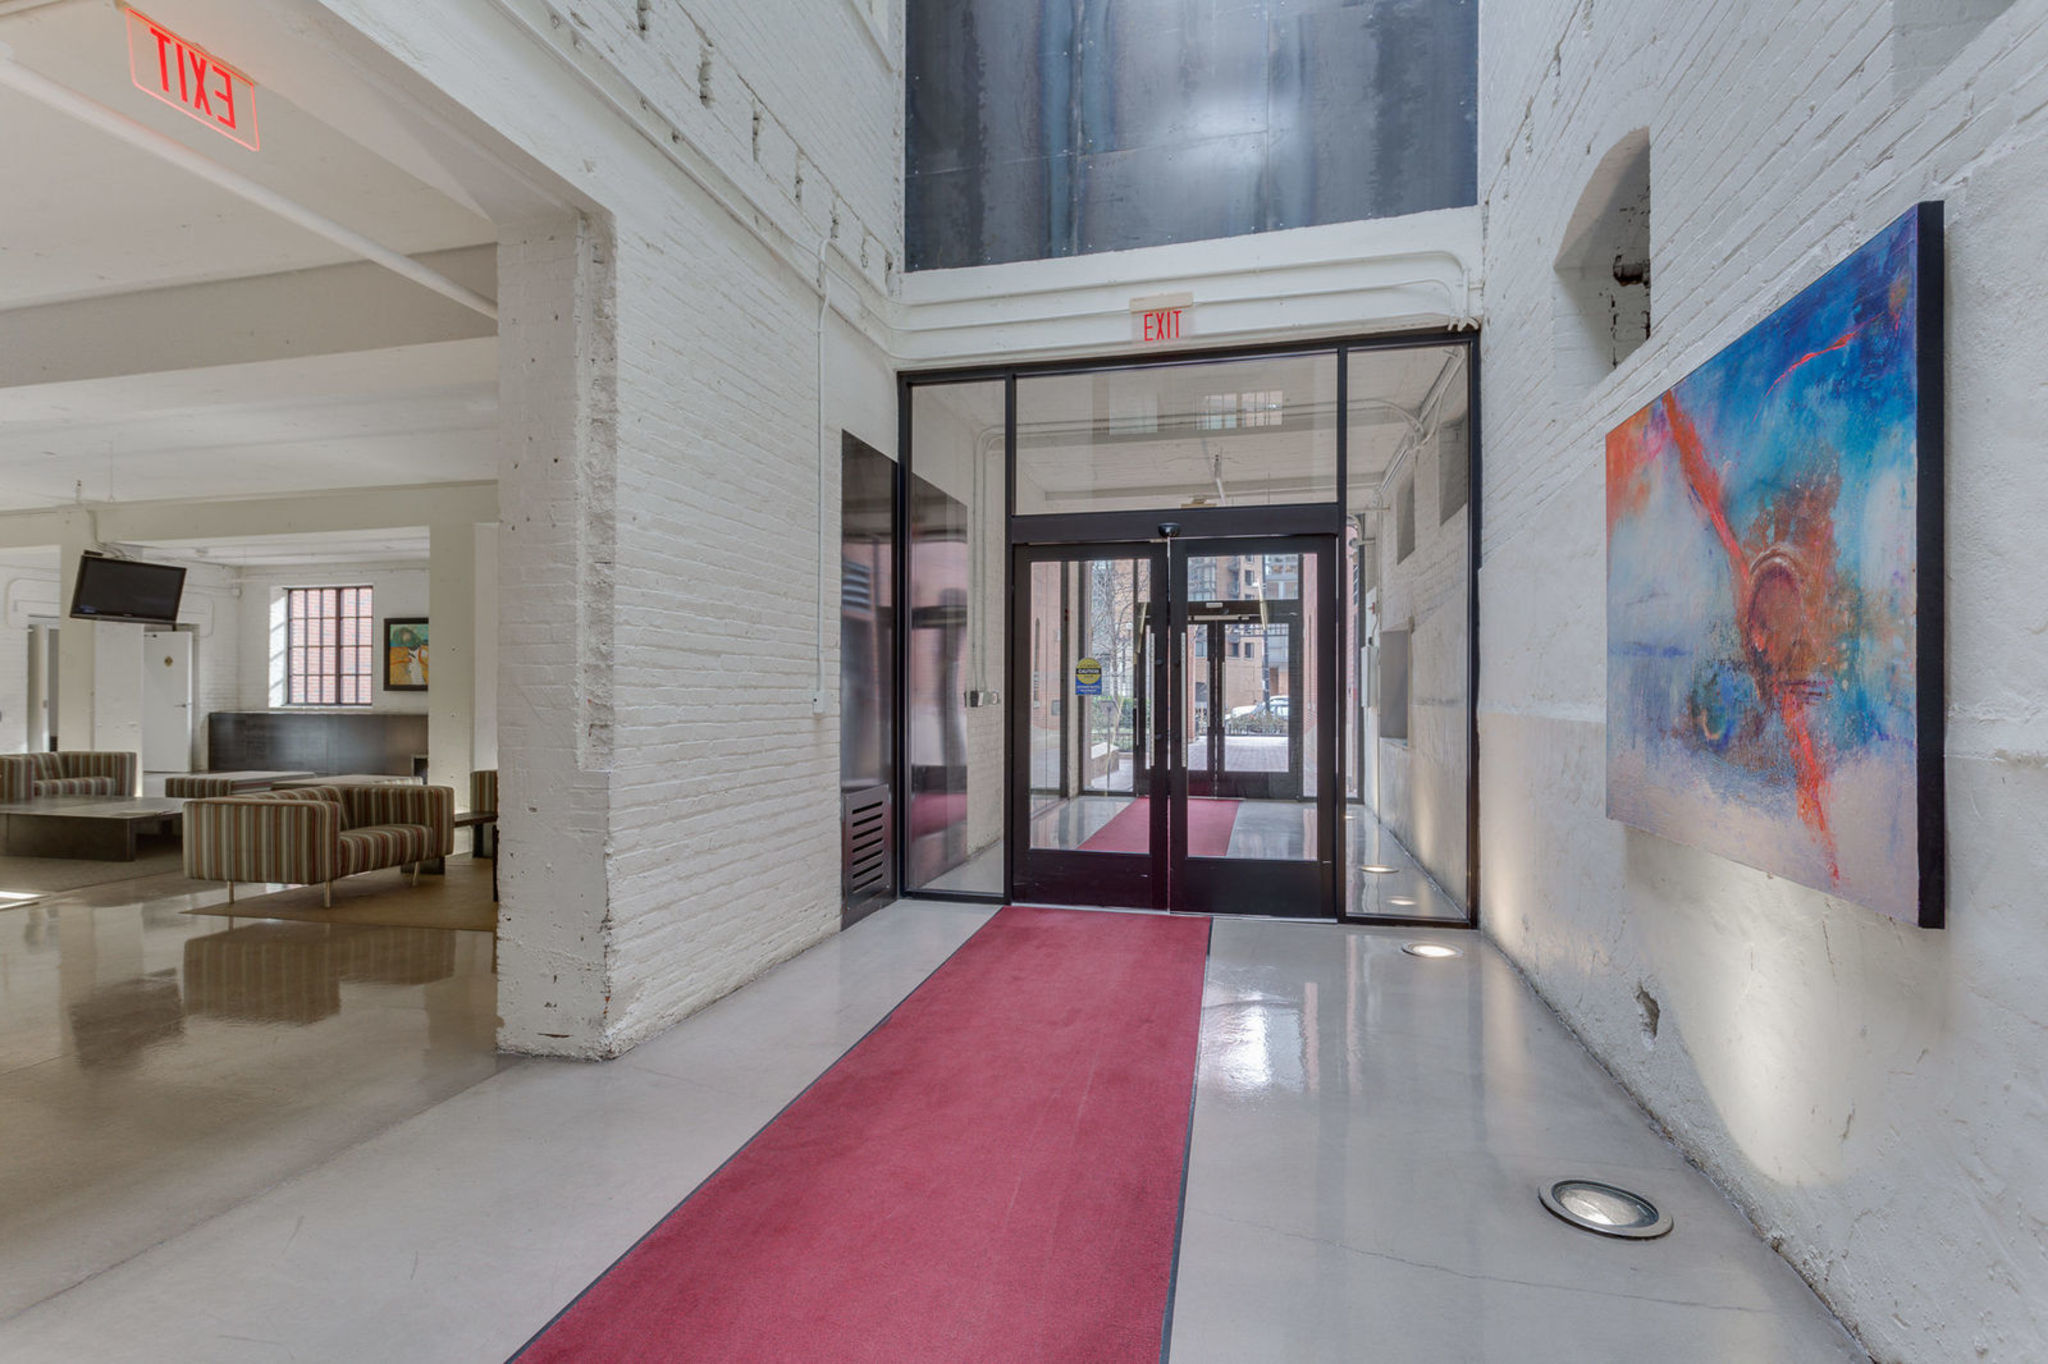 029_437_new_york_ave_nw_903-print-046-41-building_entryway-2048x1365-300dpi